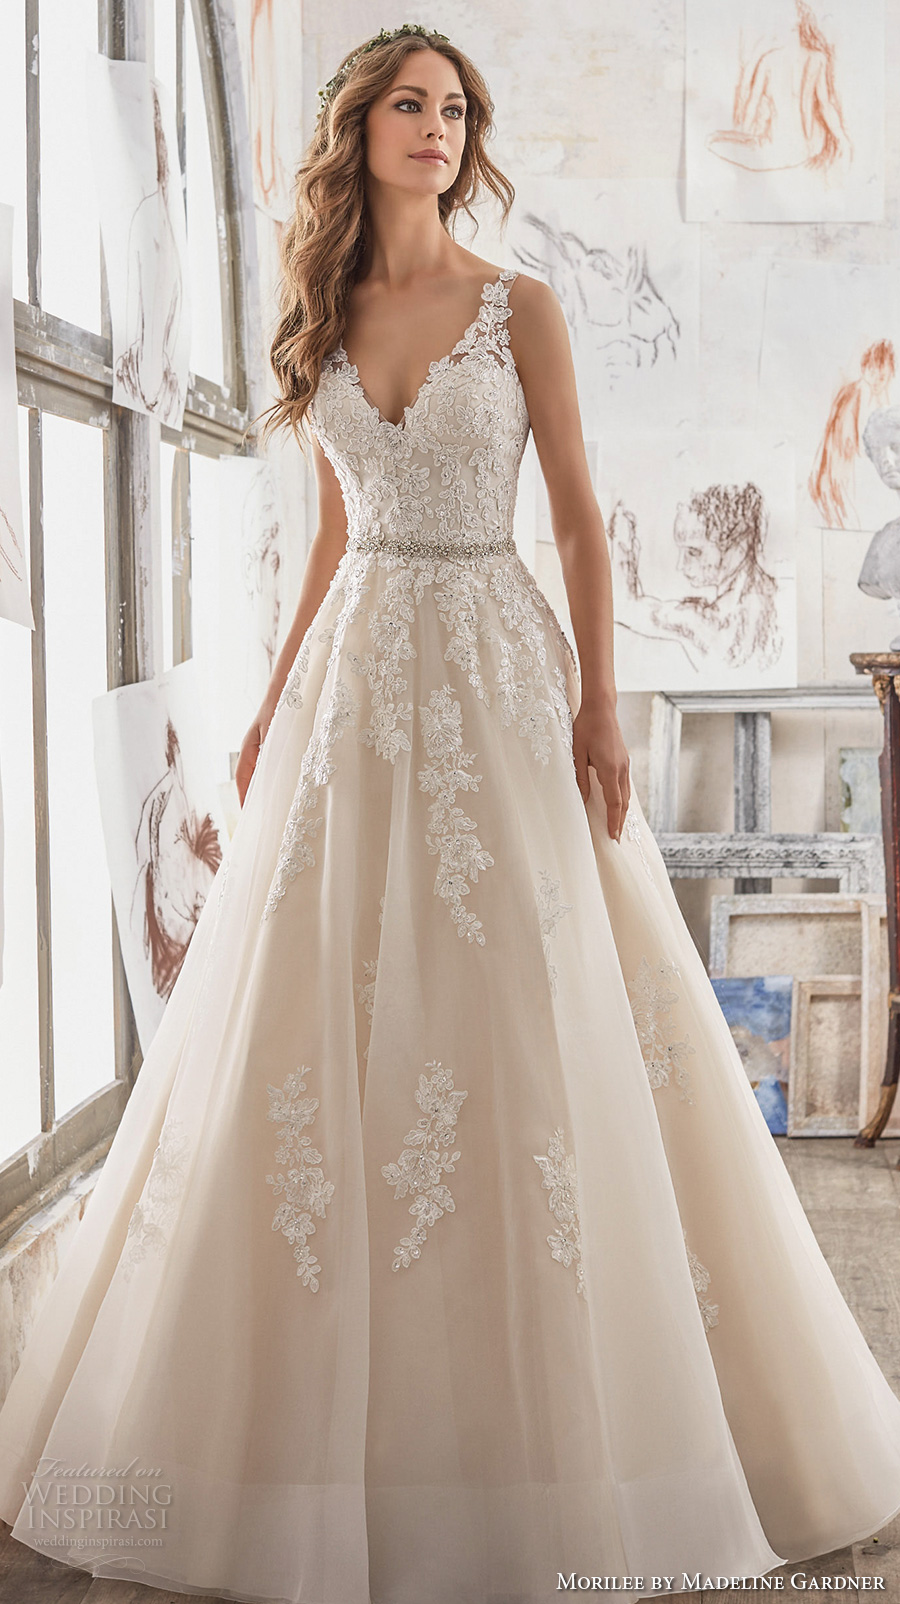 Morilee by madeline gardner spring 2017 wedding dresses for Most elegant wedding dresses